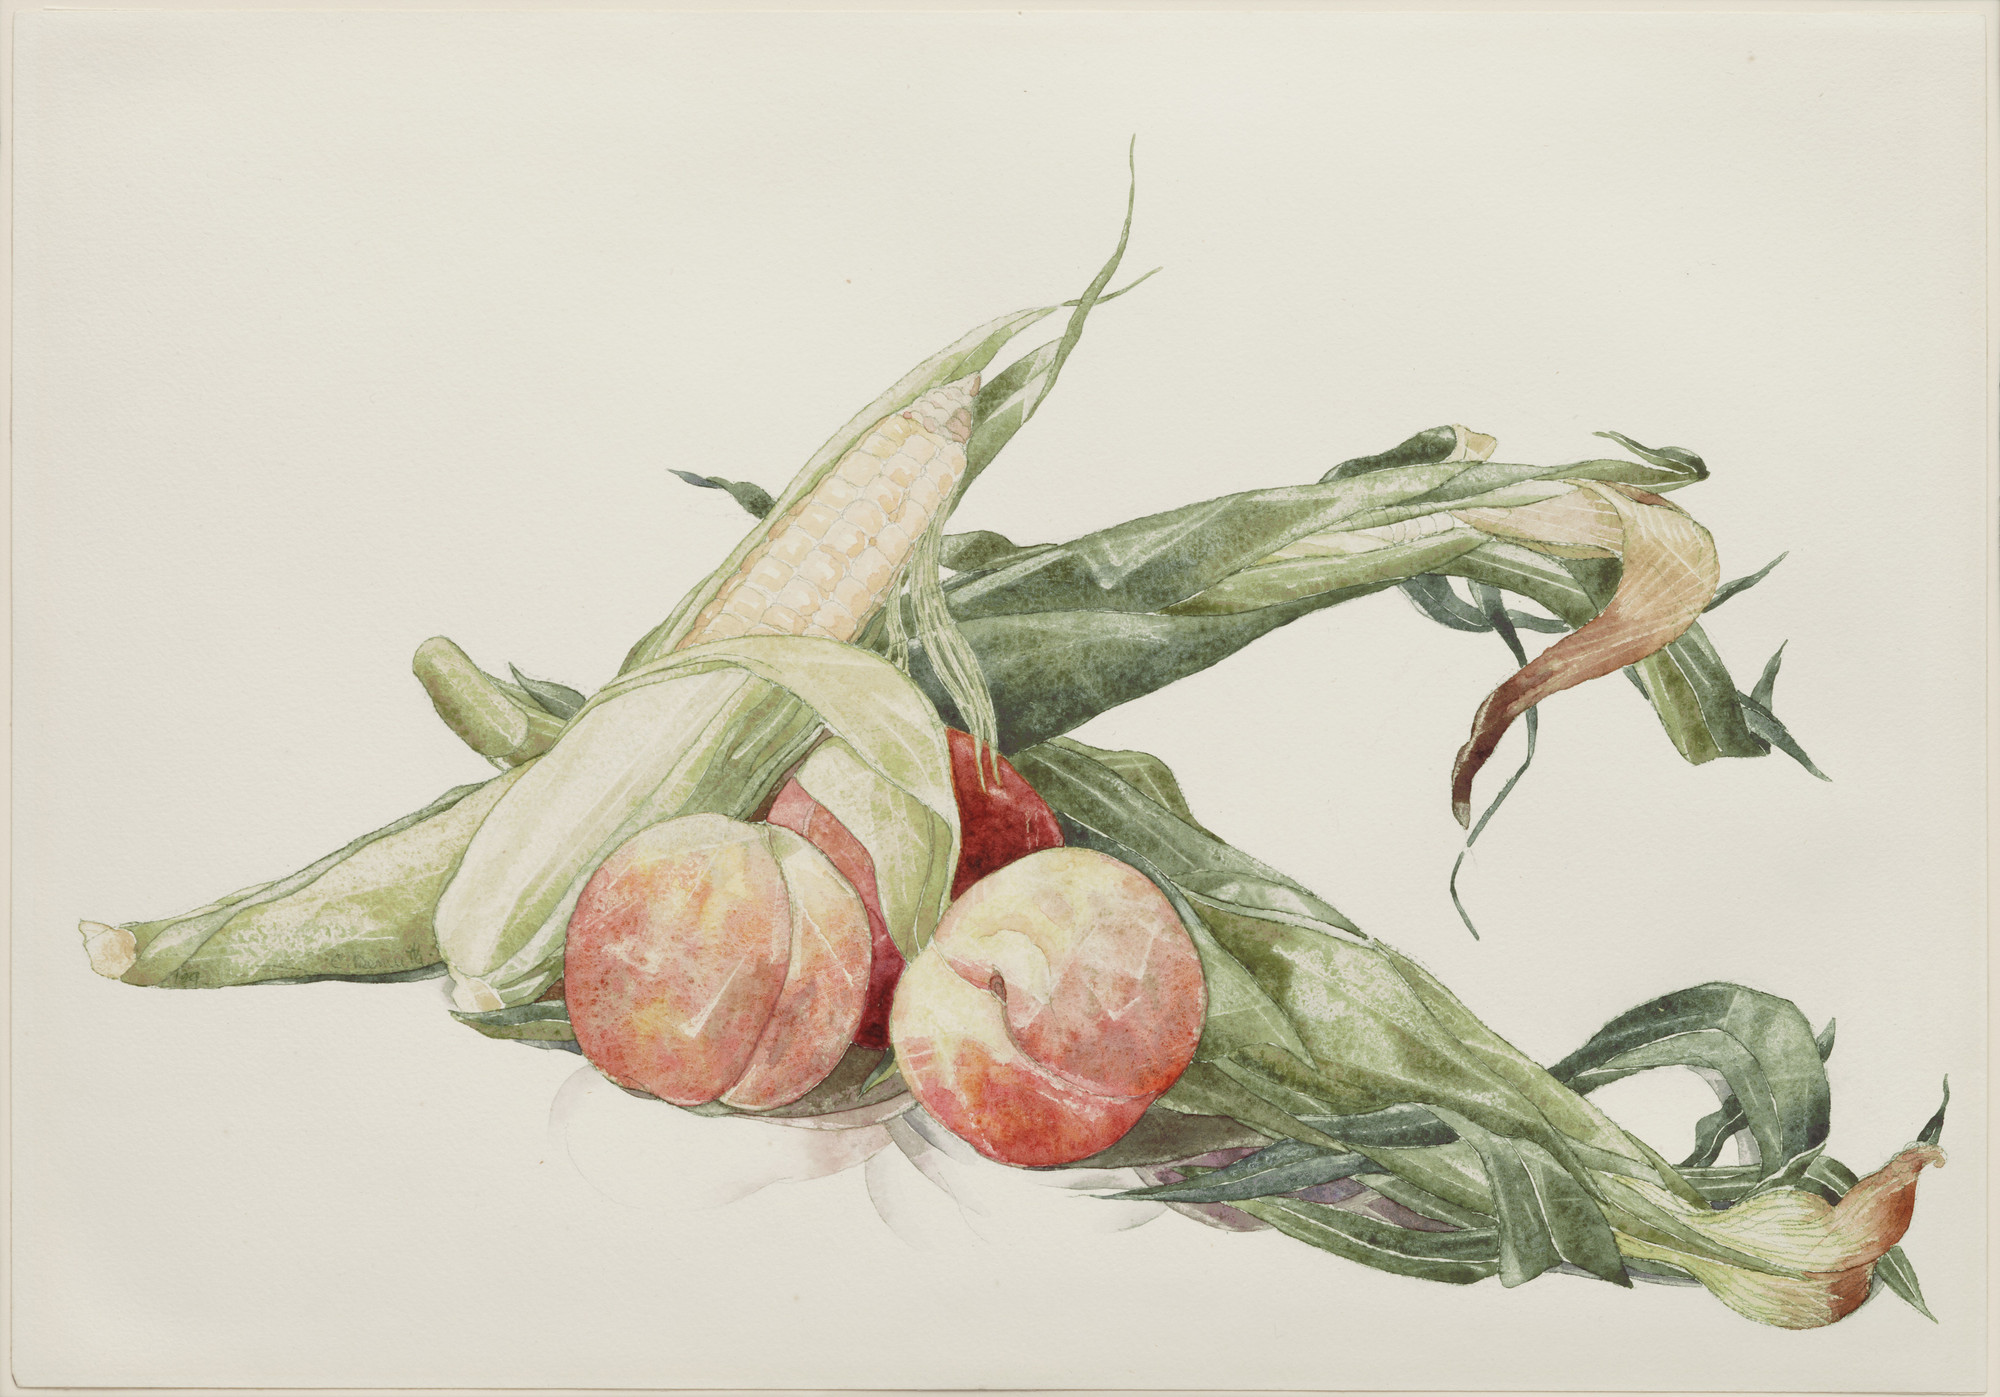 Charles Demuth. Corn and Peaches. 1929